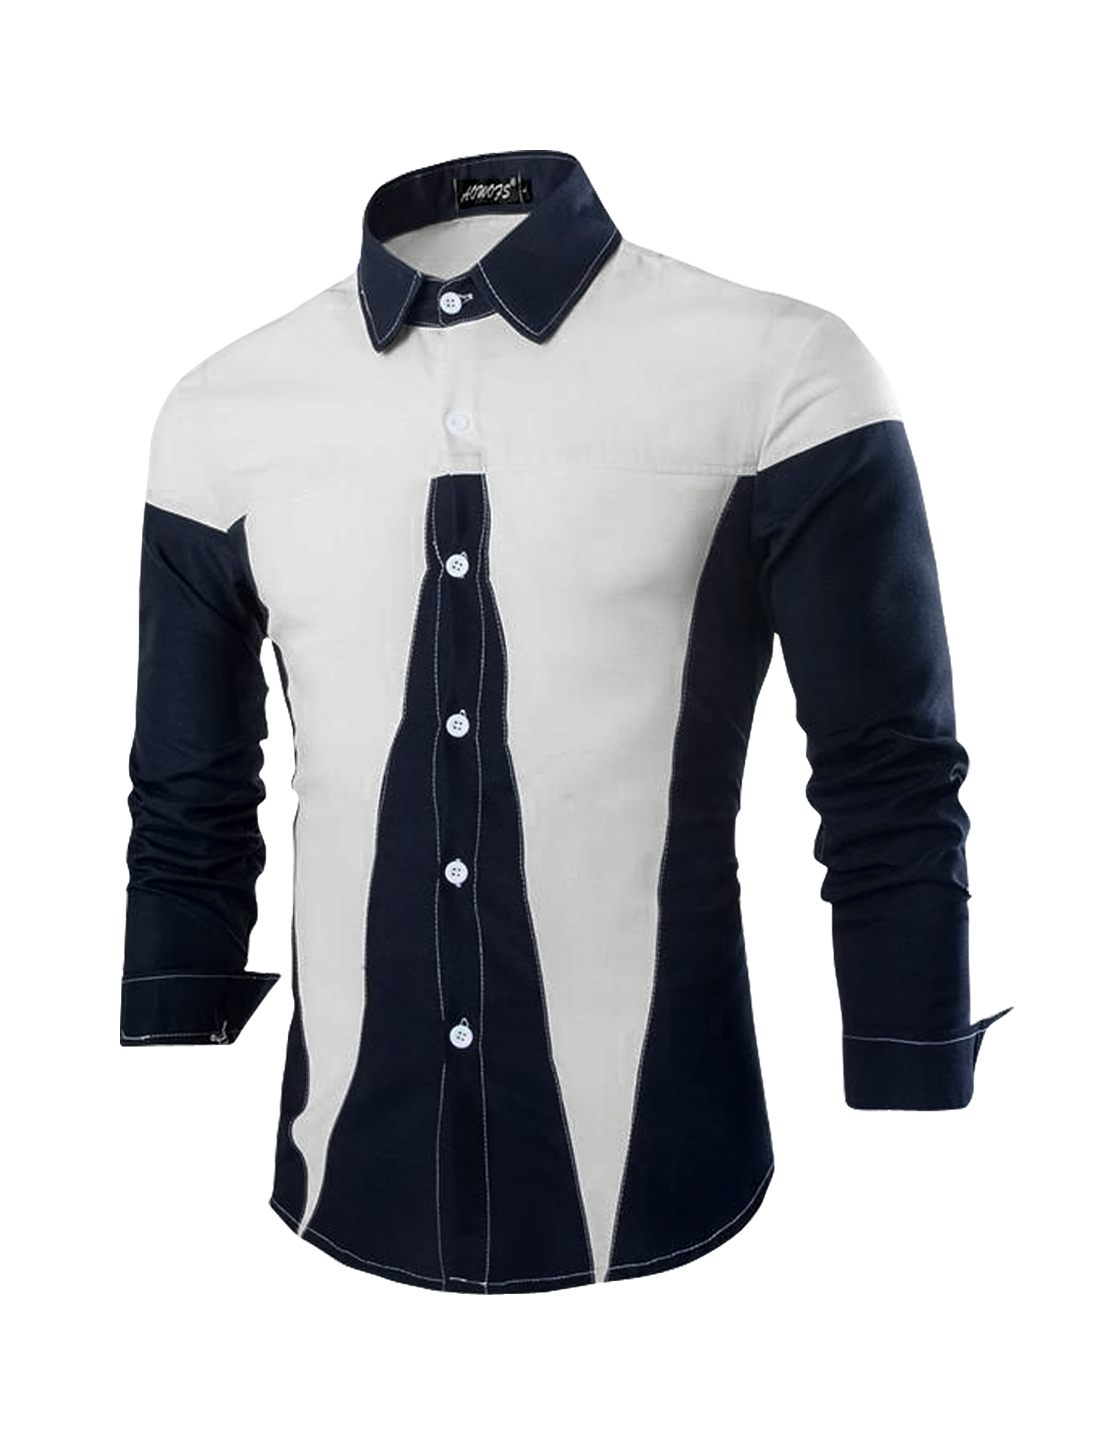 Men Point Collar Button Down Casual Shirt Whites S